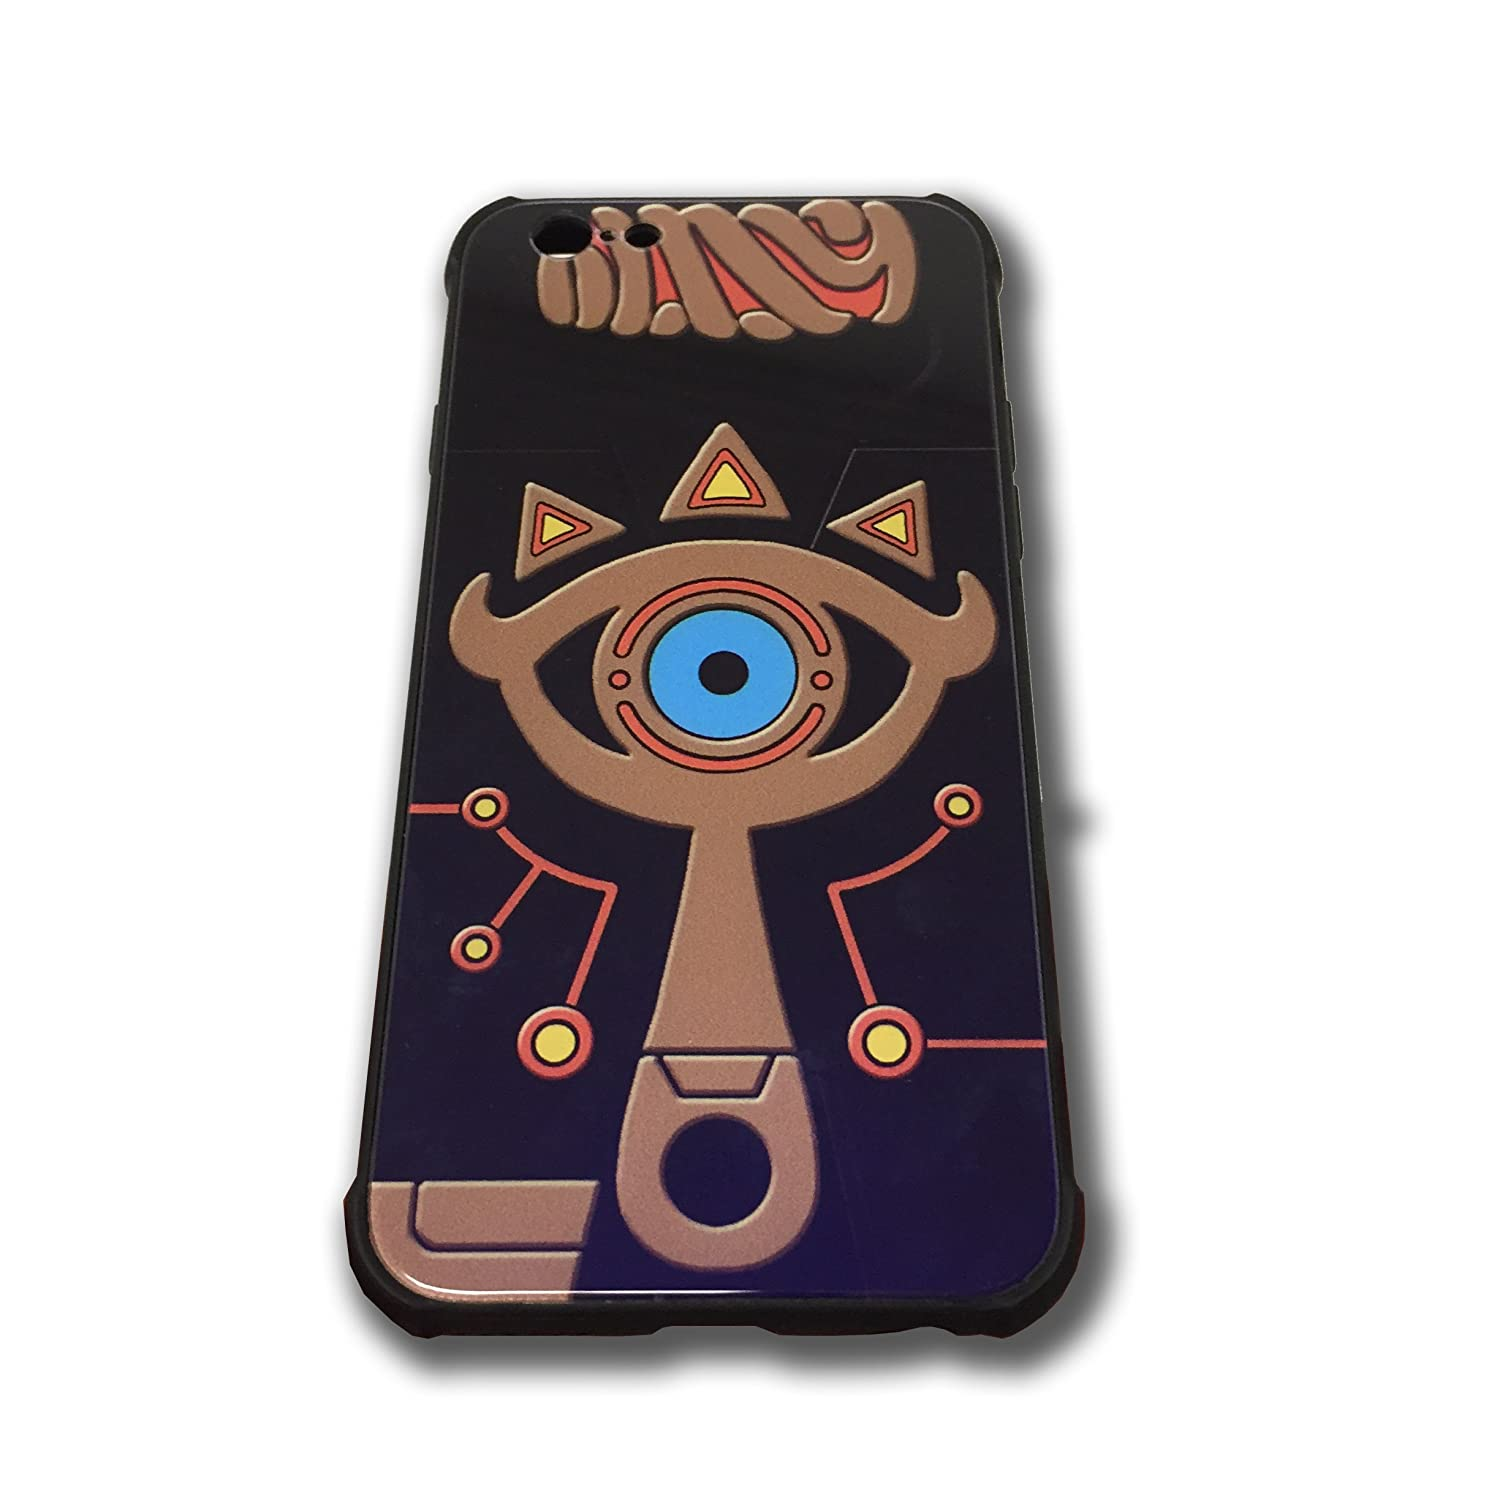 timeless design 04026 f96d5 The Legend of Zelda Sheikah Slate Eye Cell Phone Cases Blue Glass Back  Cover For iPhone 6 Plus iPhone 6s Plus